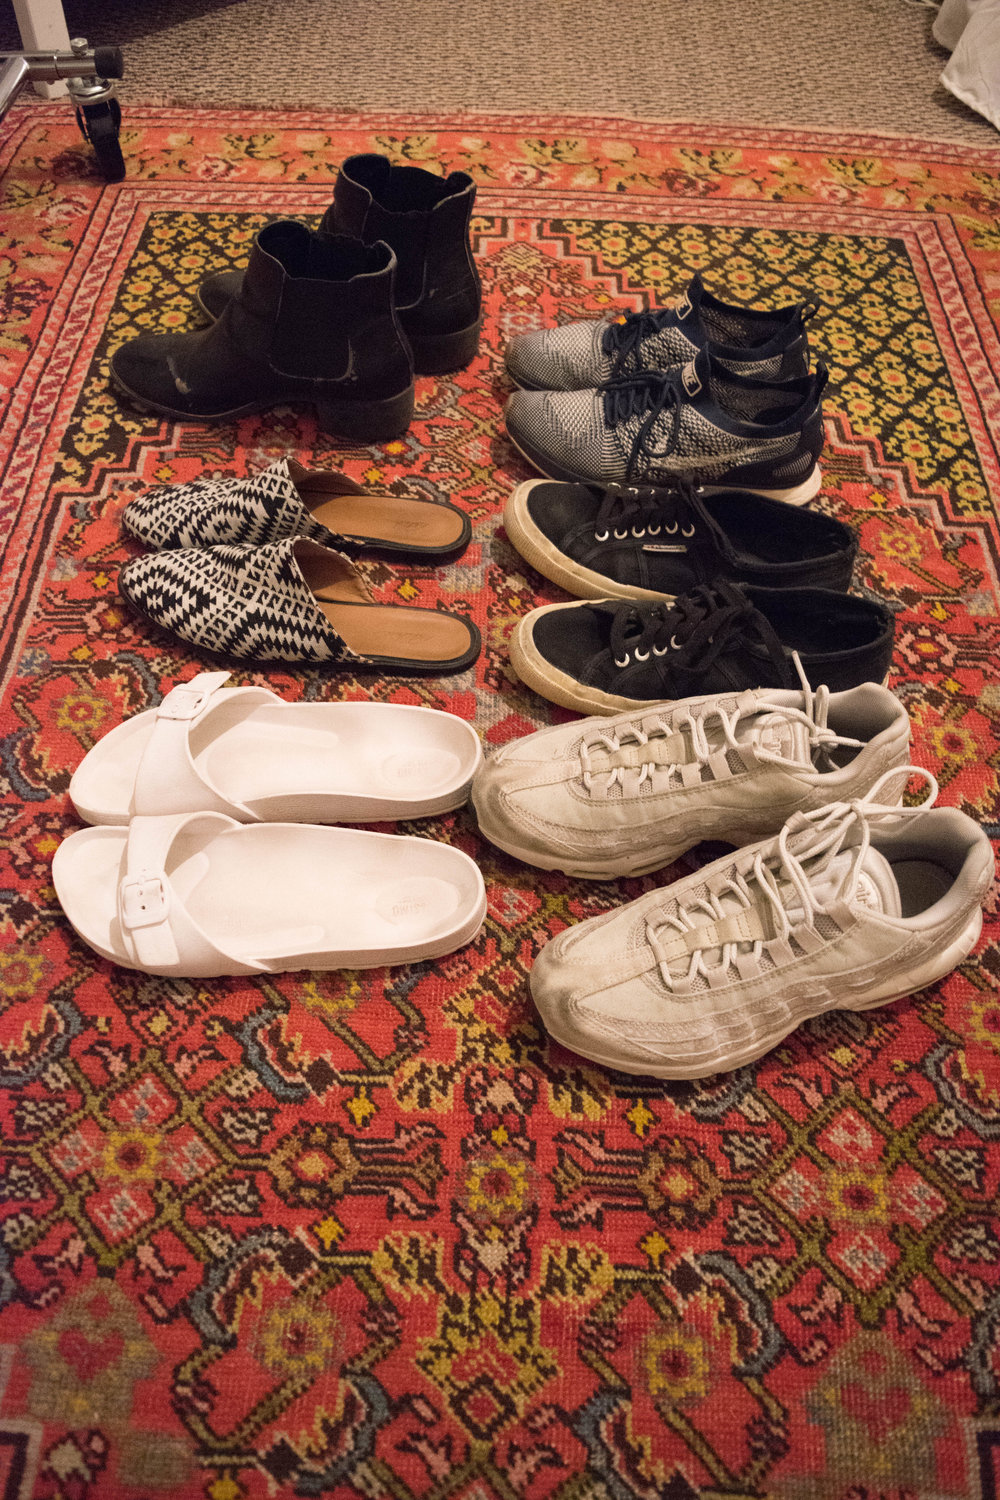 Two  Target  (white Mossimo Supply Co. sandals, Sam & Libby black boots), two  Nikes  (my everyday  fly knits  and my newish  Air Max 95s ), one pair of  Asos   Park Lane mules , and one pair of black  Supergas . Let's go!